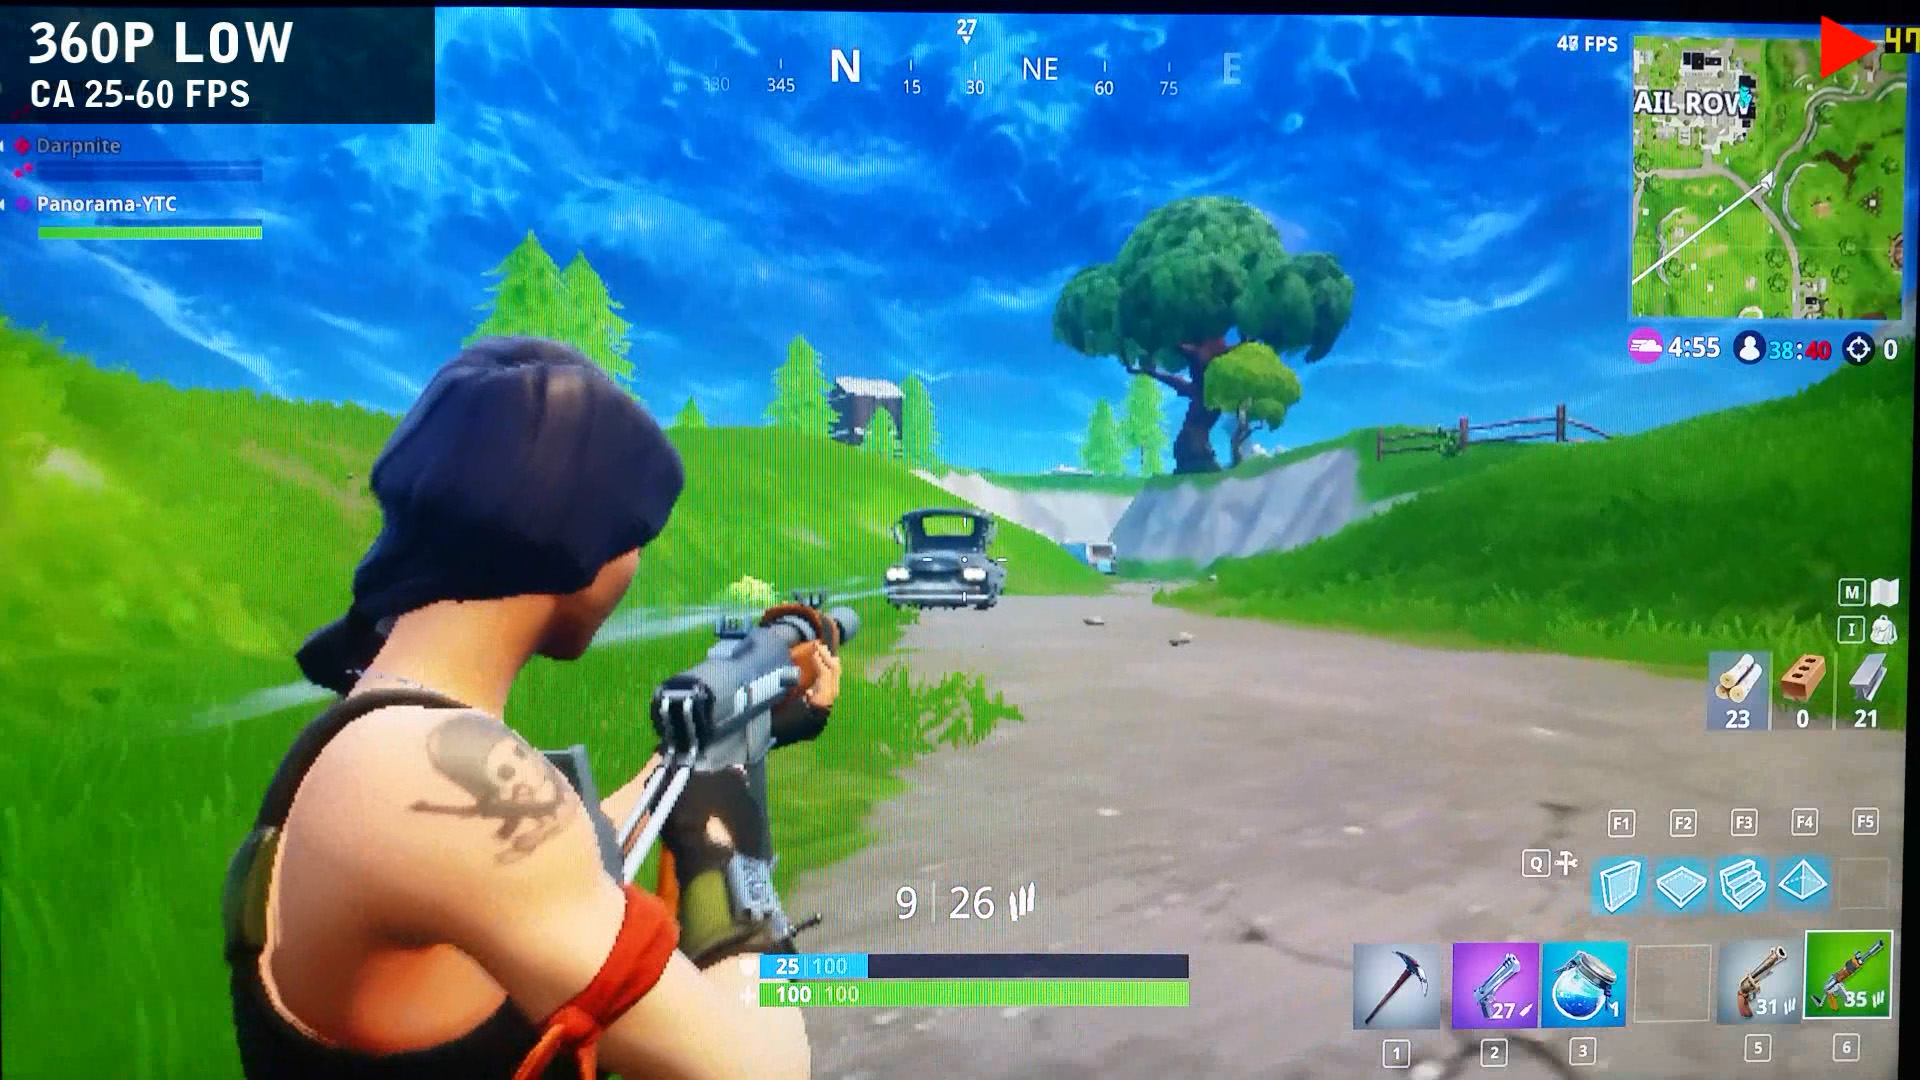 Fortnite On Intel Hd 4000 With Min Specs Thinkpad T430s Panorama